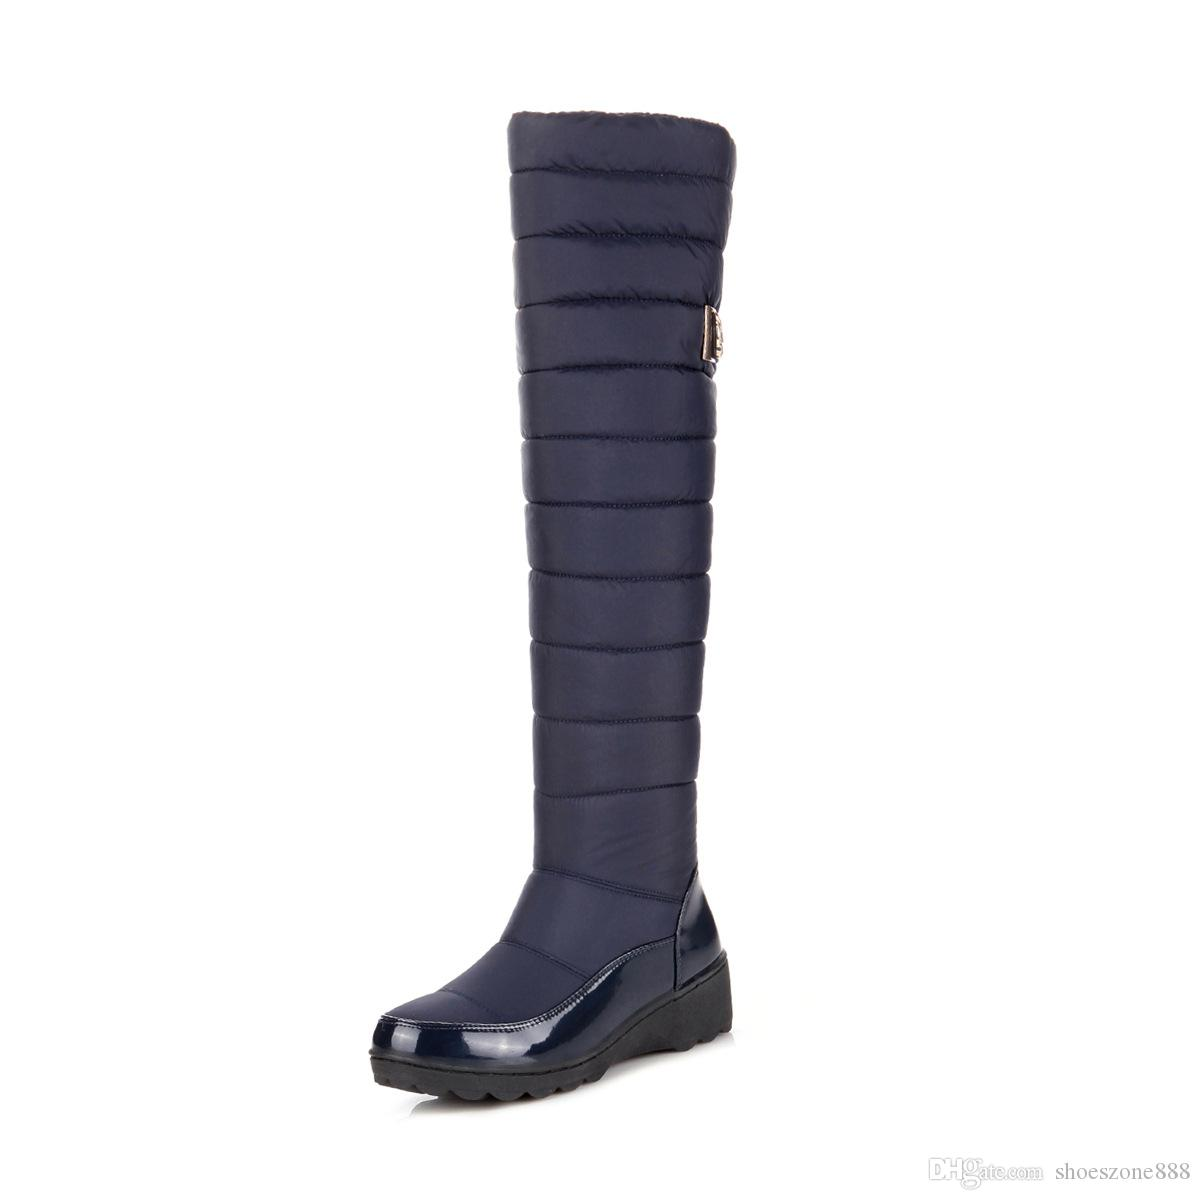 28a581d30 Warm Russia Women Winter Long Boots Plush Knee High Boots Down Fur  Waterproof Thigh High Ladies Snow Boots Shoes Round Toe Zv811 Combat Boots  Rain Boots ...